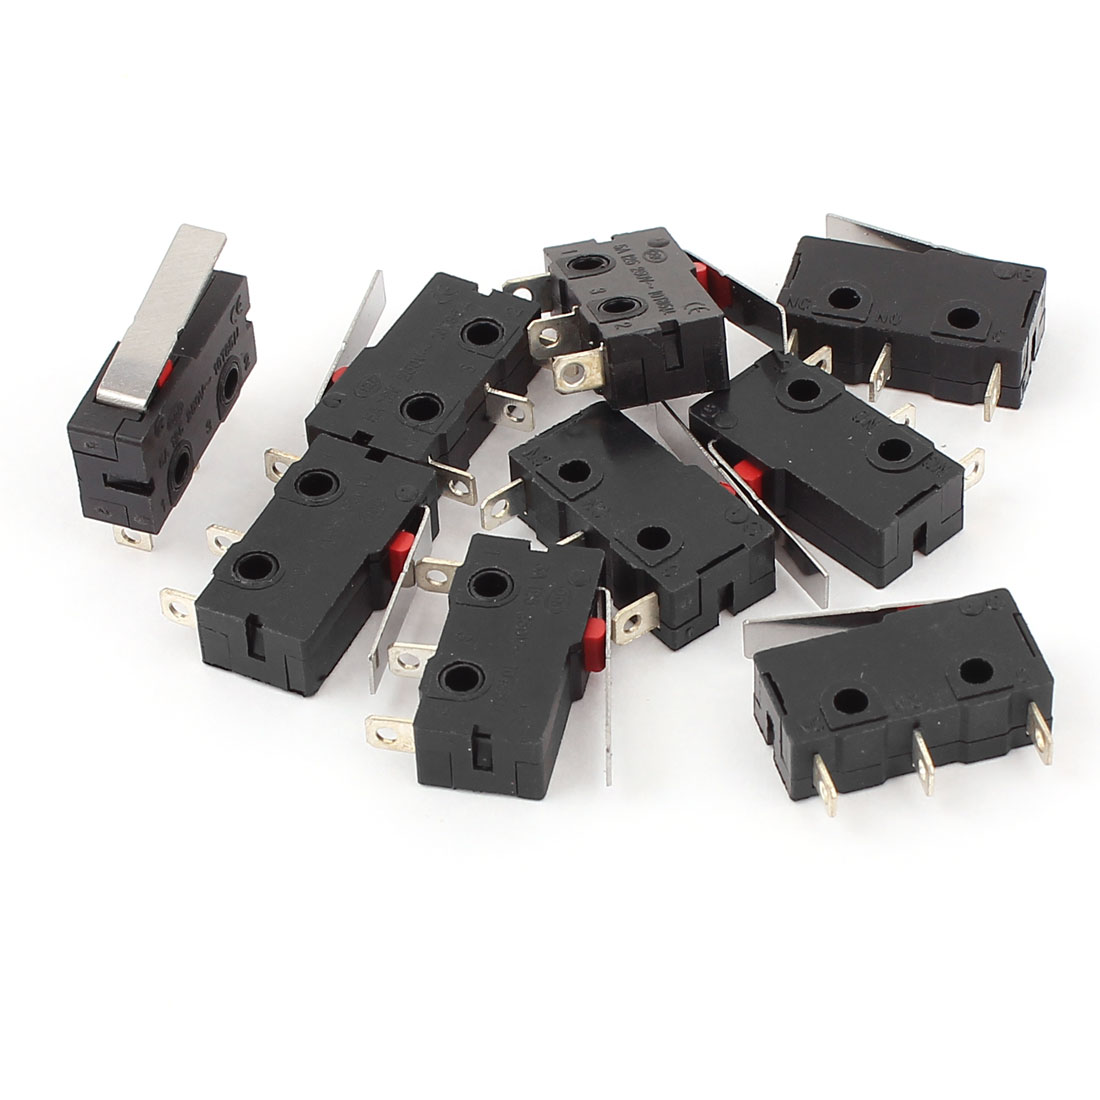 9 Pcs AC 125V/250V 5A SPDT 1NO 1NC 3 Terminals Hinge Lever Momentary Control Mini Micro Limit Switch